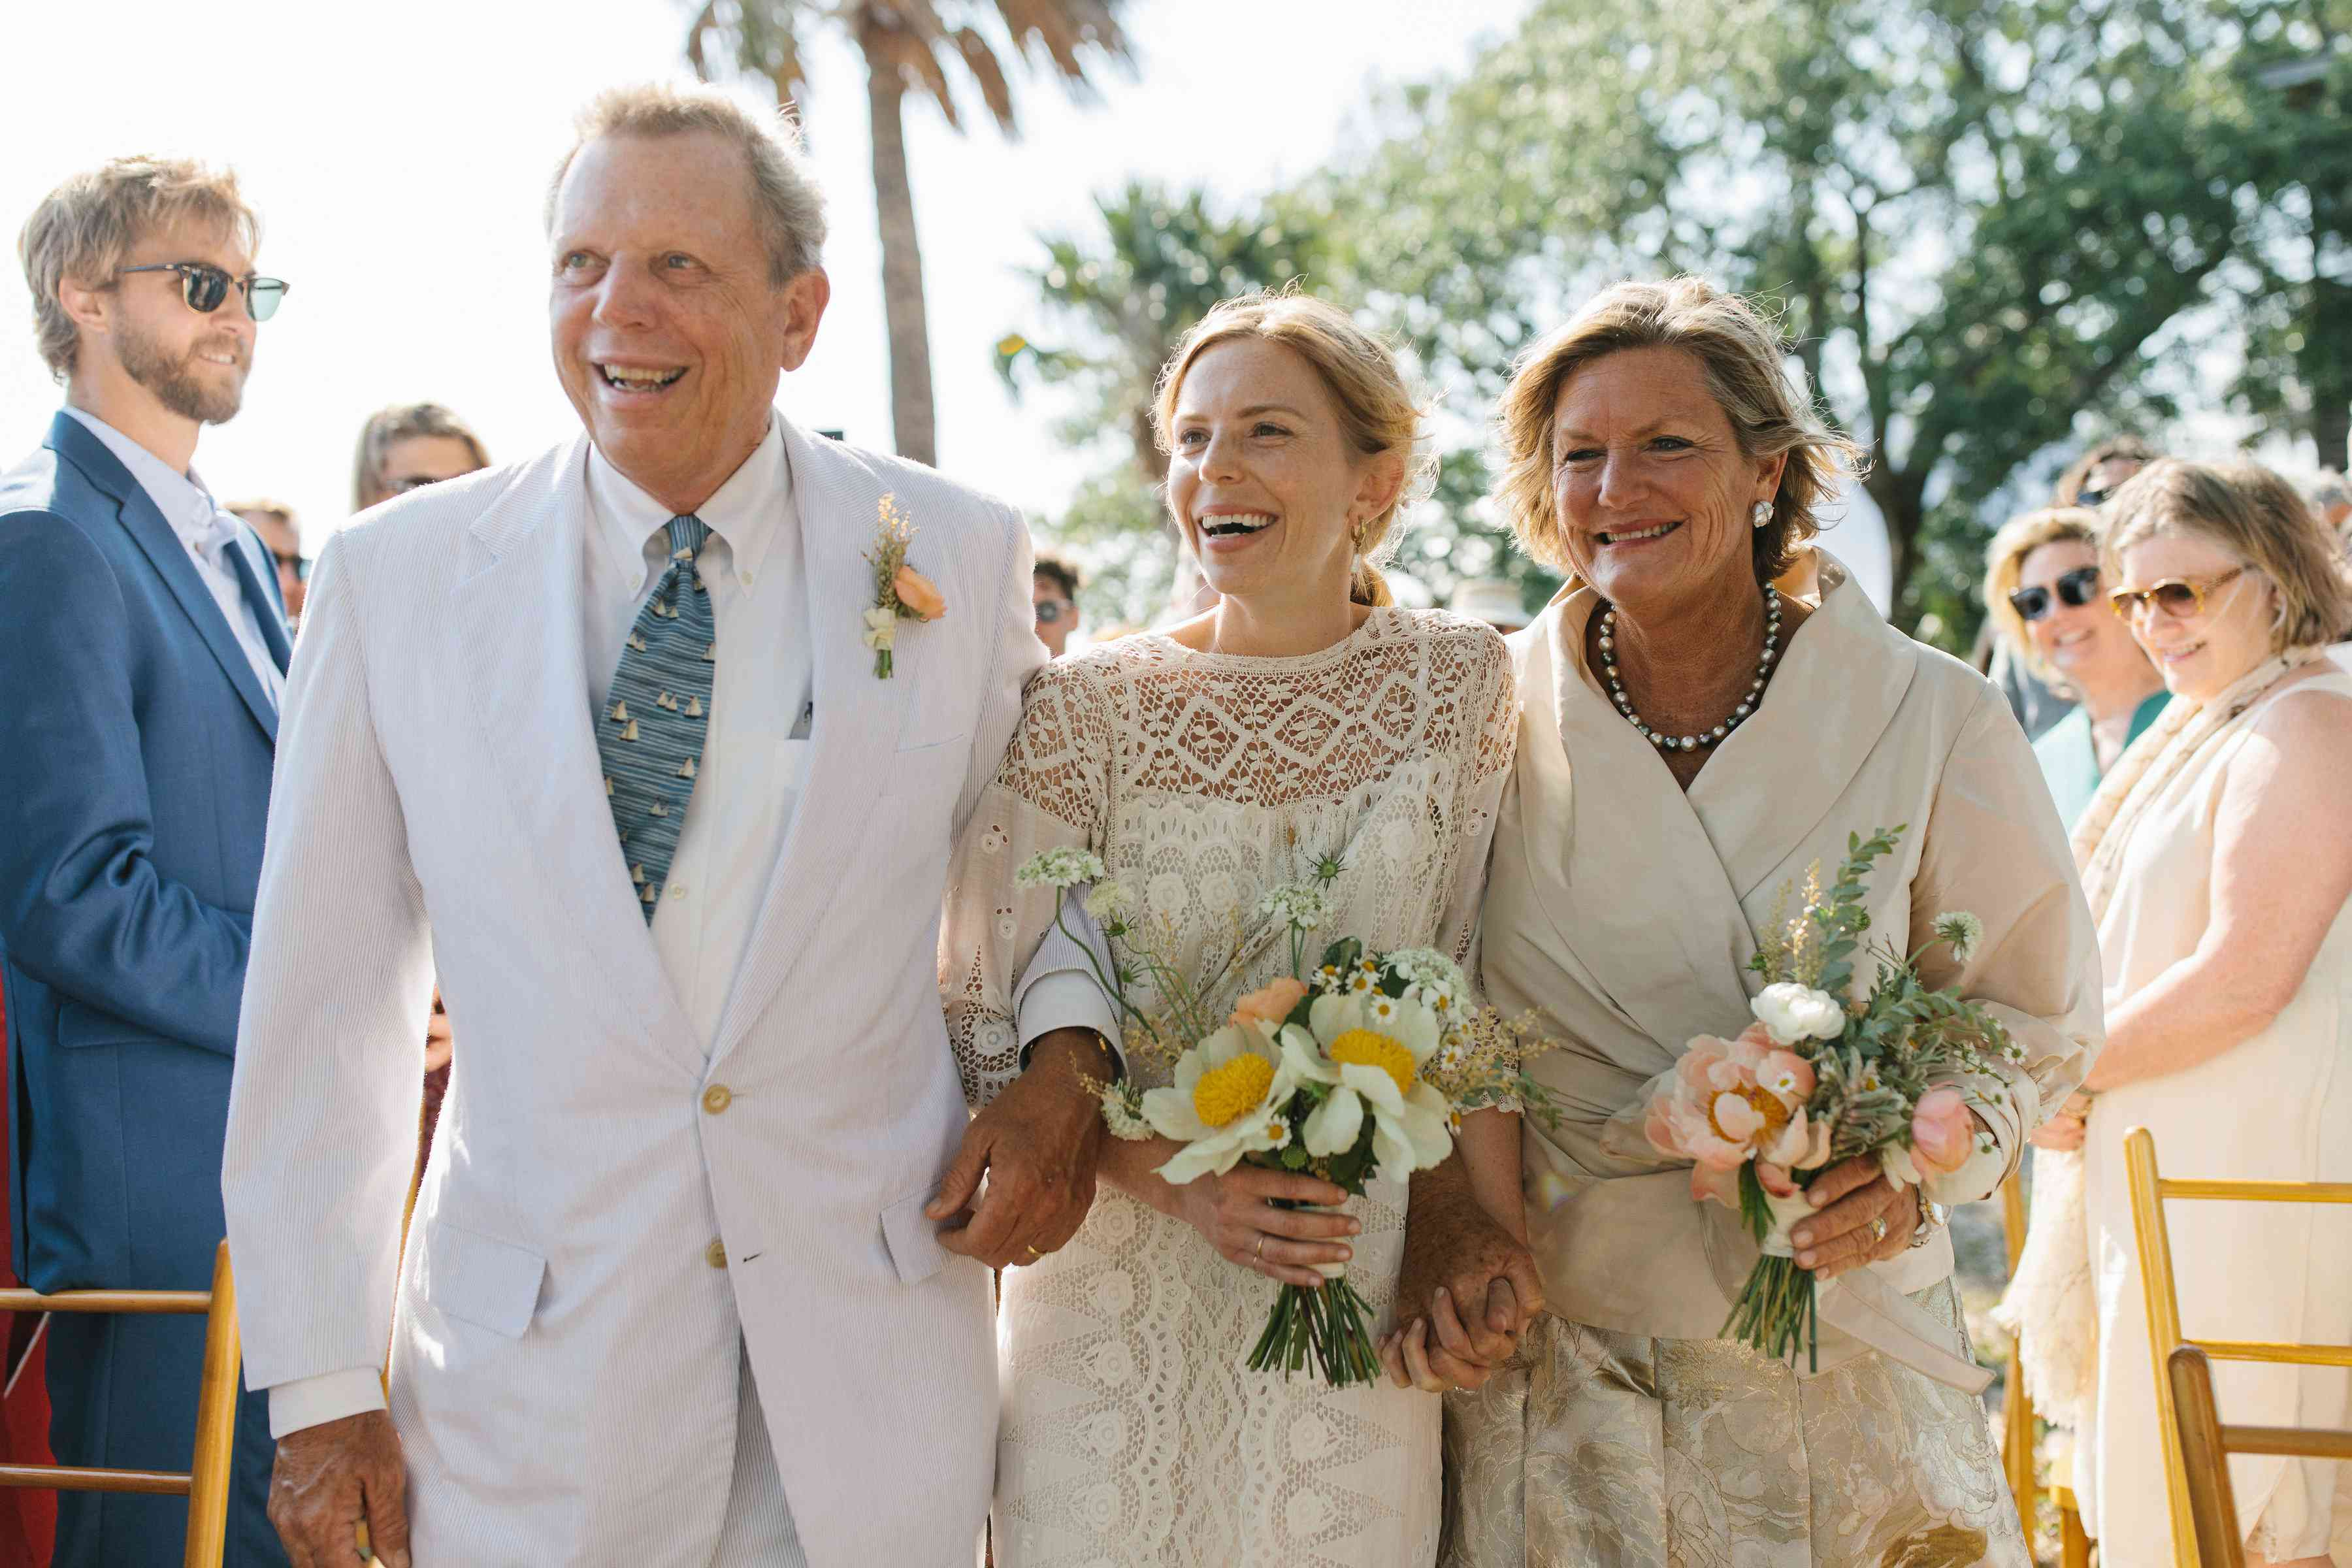 <p>bride walking down the aisle with both parents</p><br><br>